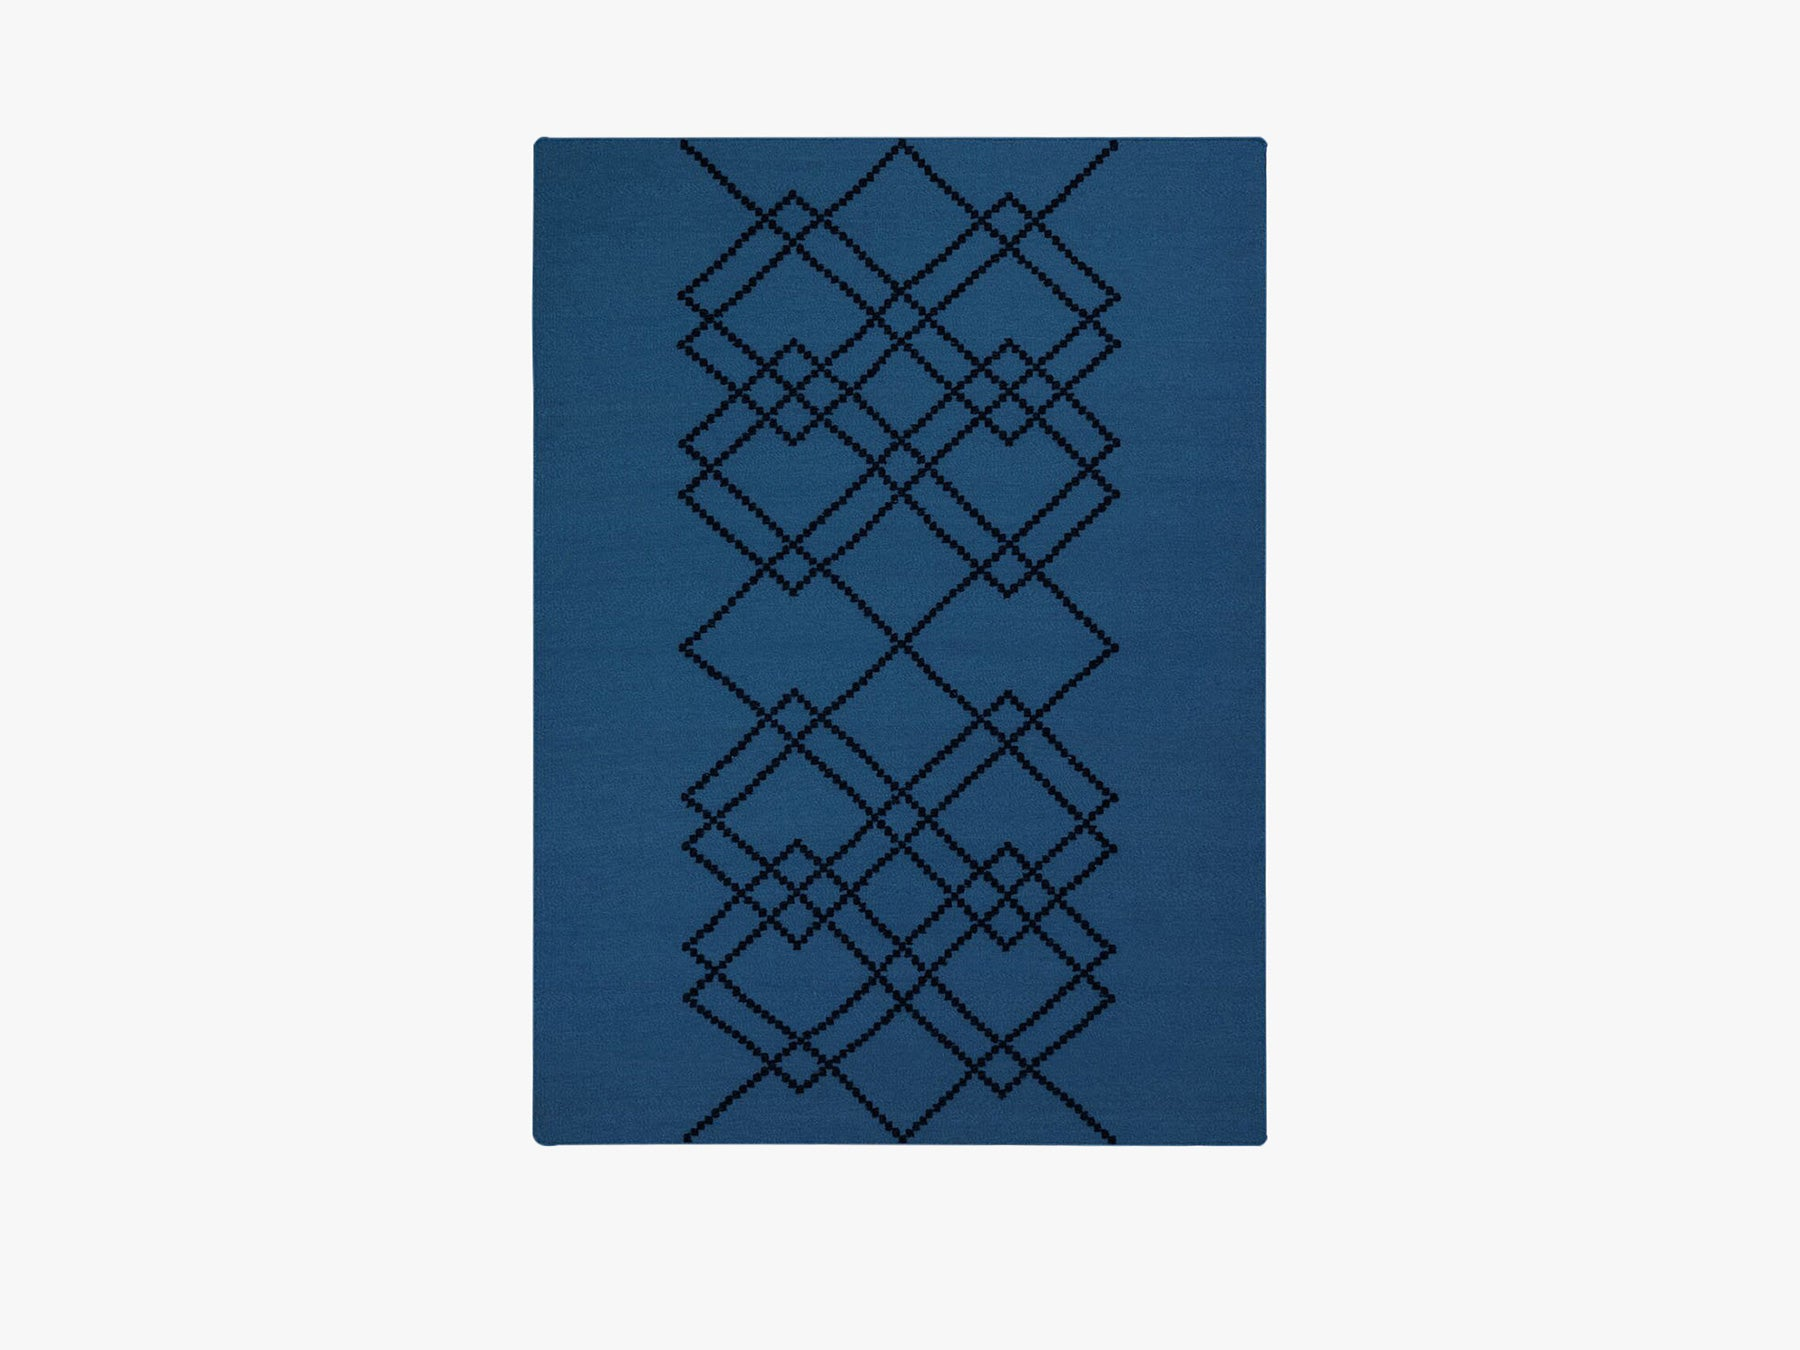 Rug Borg - 200x300 - Royal Blue fra Louise Roe